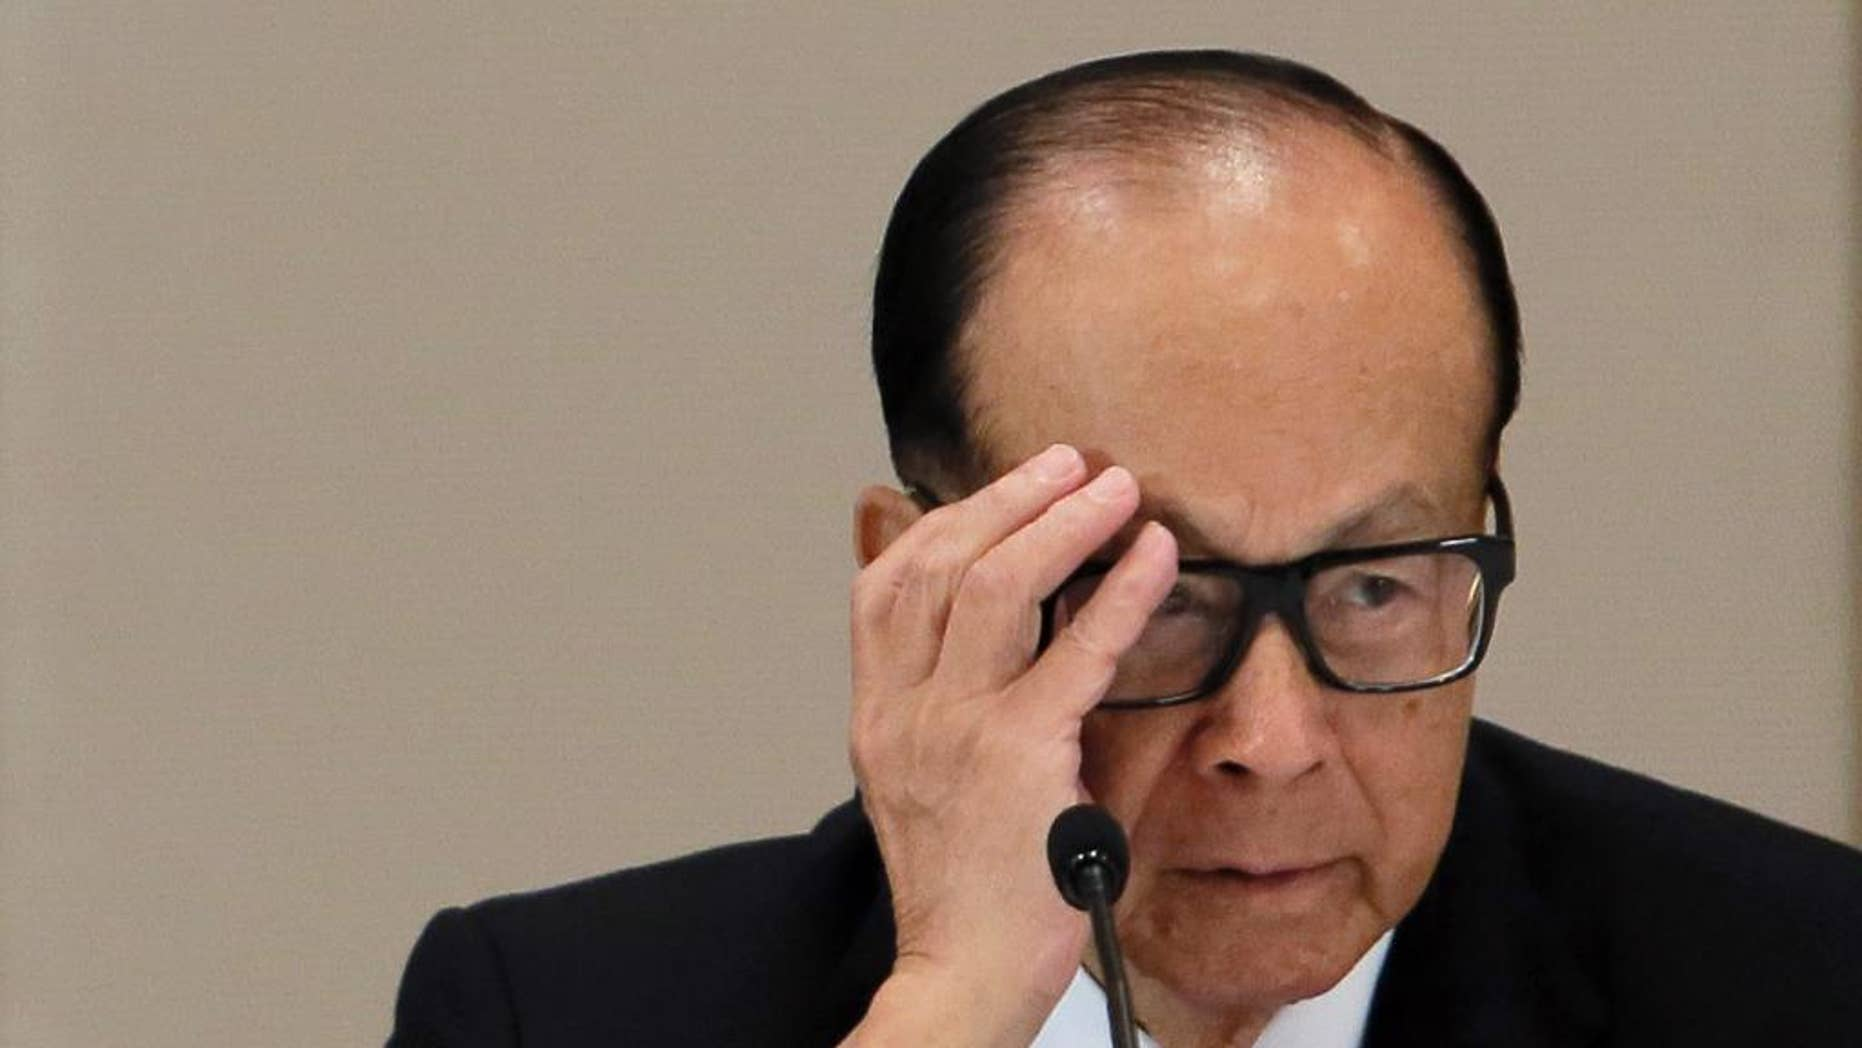 FILE - In this Jan. 9, 2015 file photo, Hong Kong tycoon Li Ka-shing reacts during a press conference in Hong Kong. Hong Kong billionaire Li has defended his business strategy against criticism in China's state media that accused him of abandoning the country because of its slowing growth.(AP Photo/Vincent Yu)